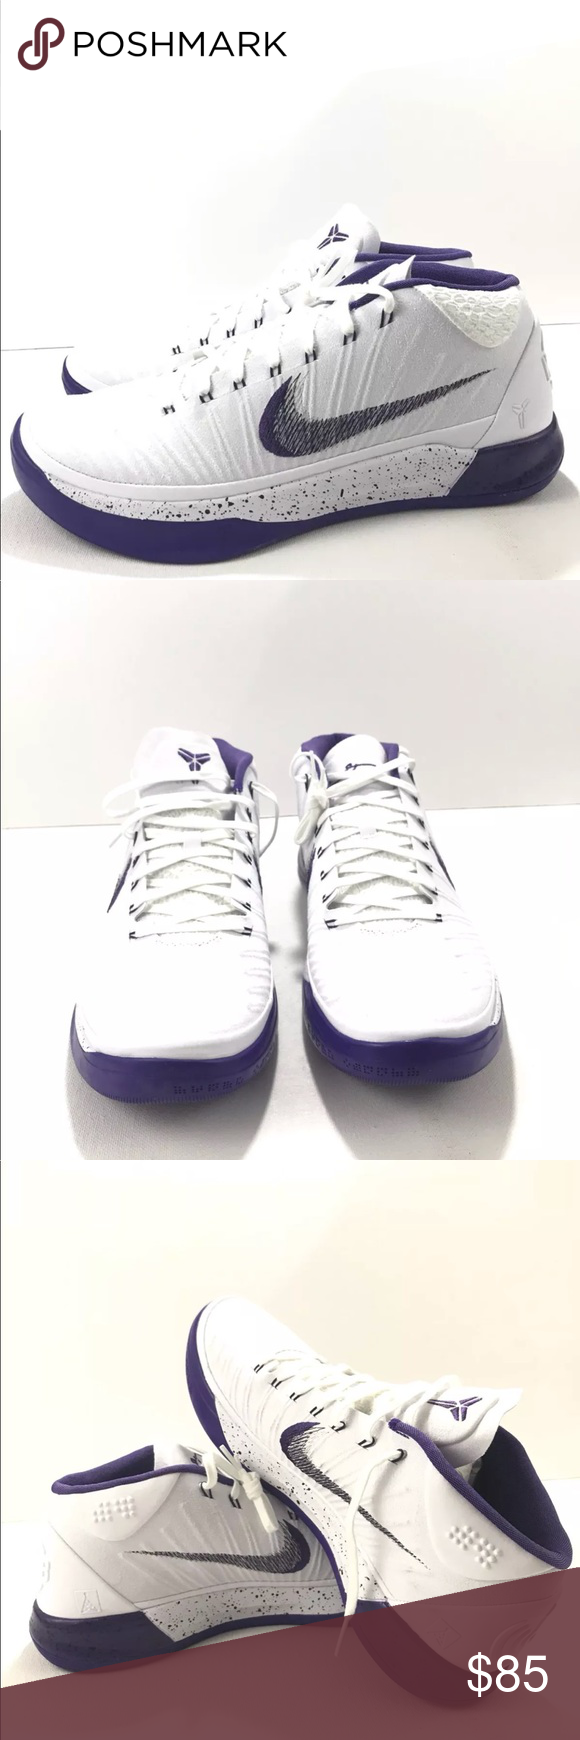 innovative design ac623 94c89 Nike KOBE A.D Mid Basketball Baseline White Purple BRAND  Nike MODEL  Nike  Kobe A.D